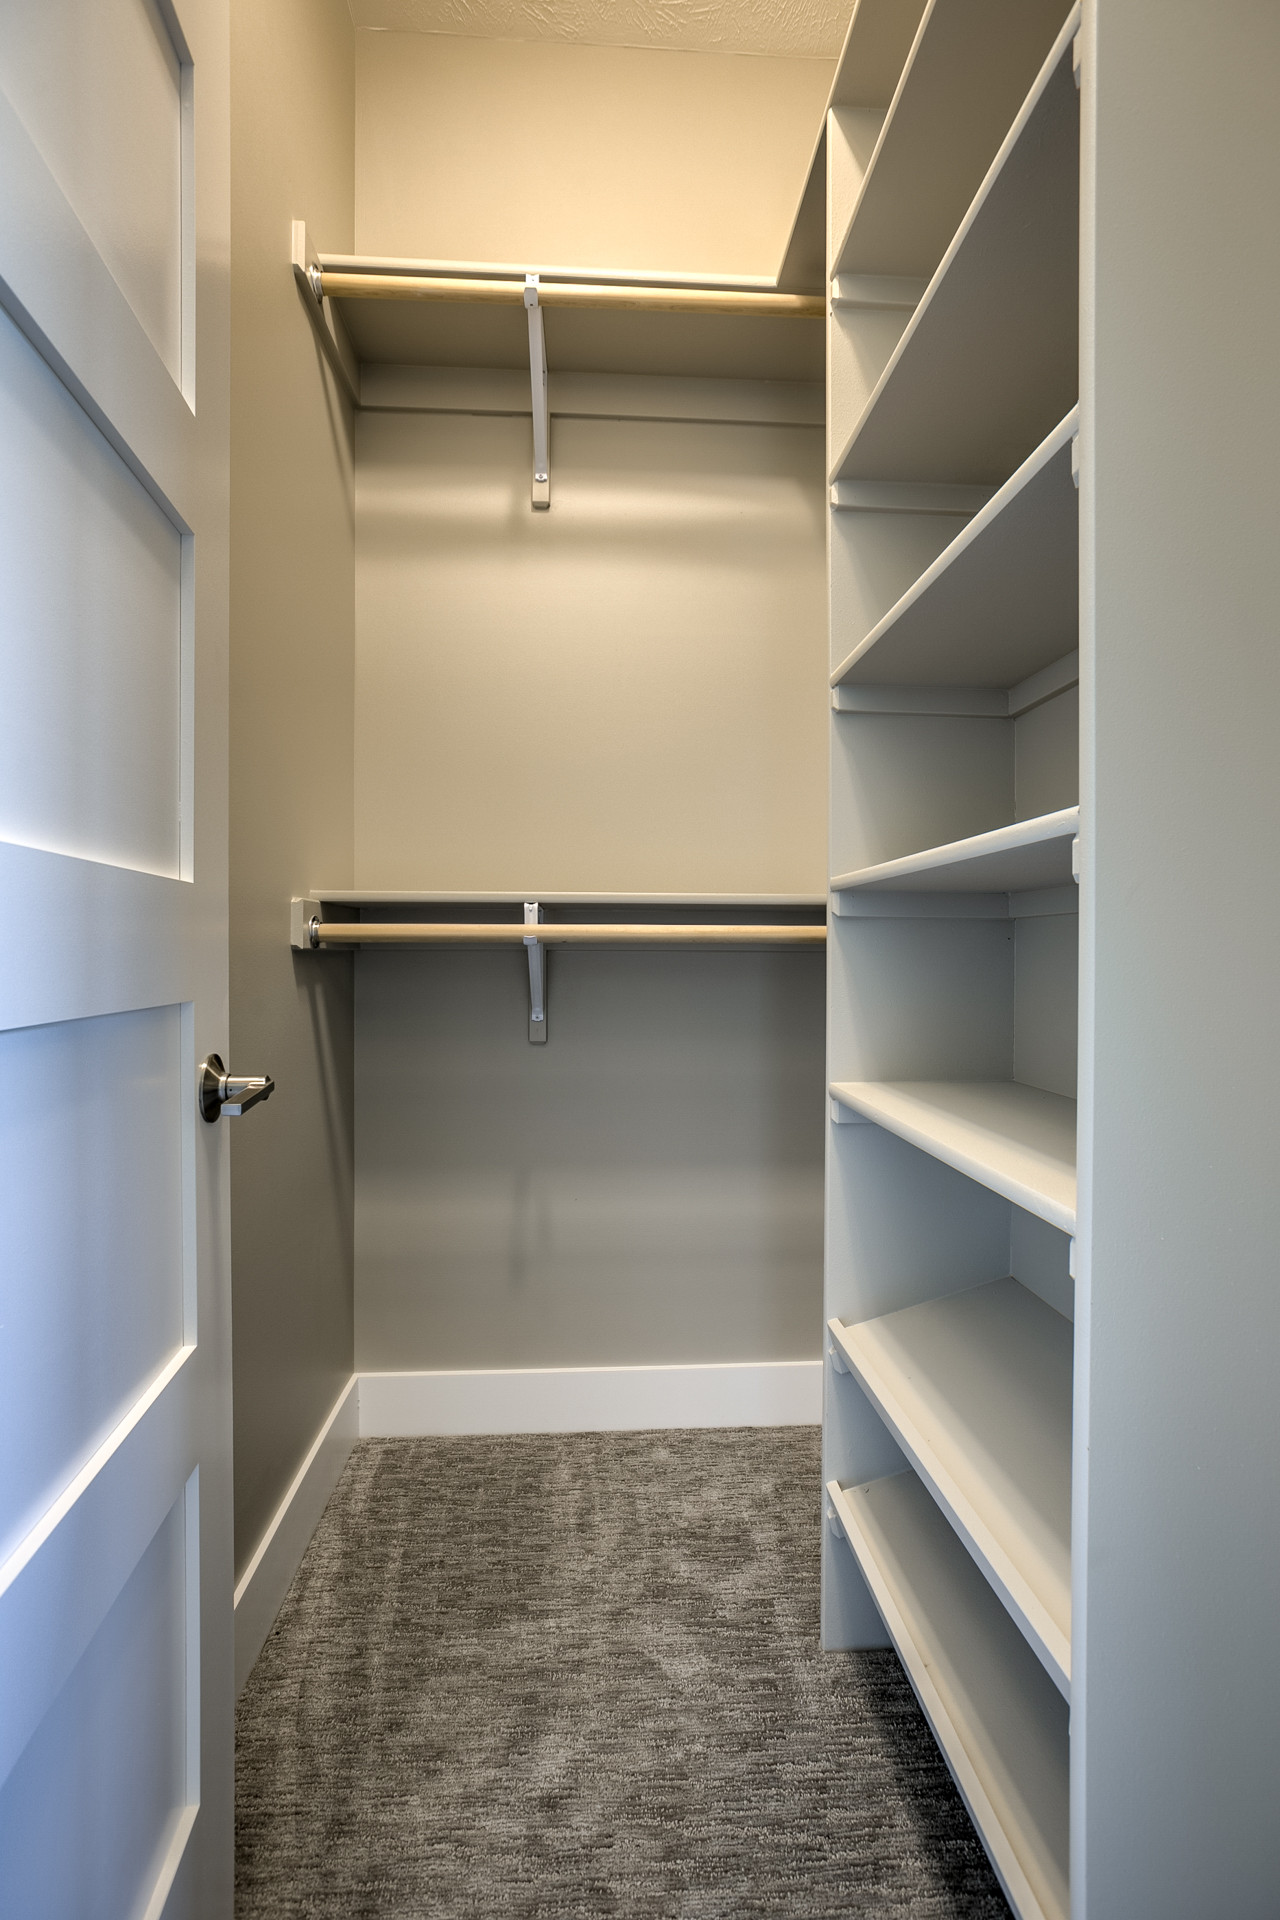 75 Beautiful Small Walk In Closet Pictures Ideas October 2020 Houzz,Cubicle Decoration Themes